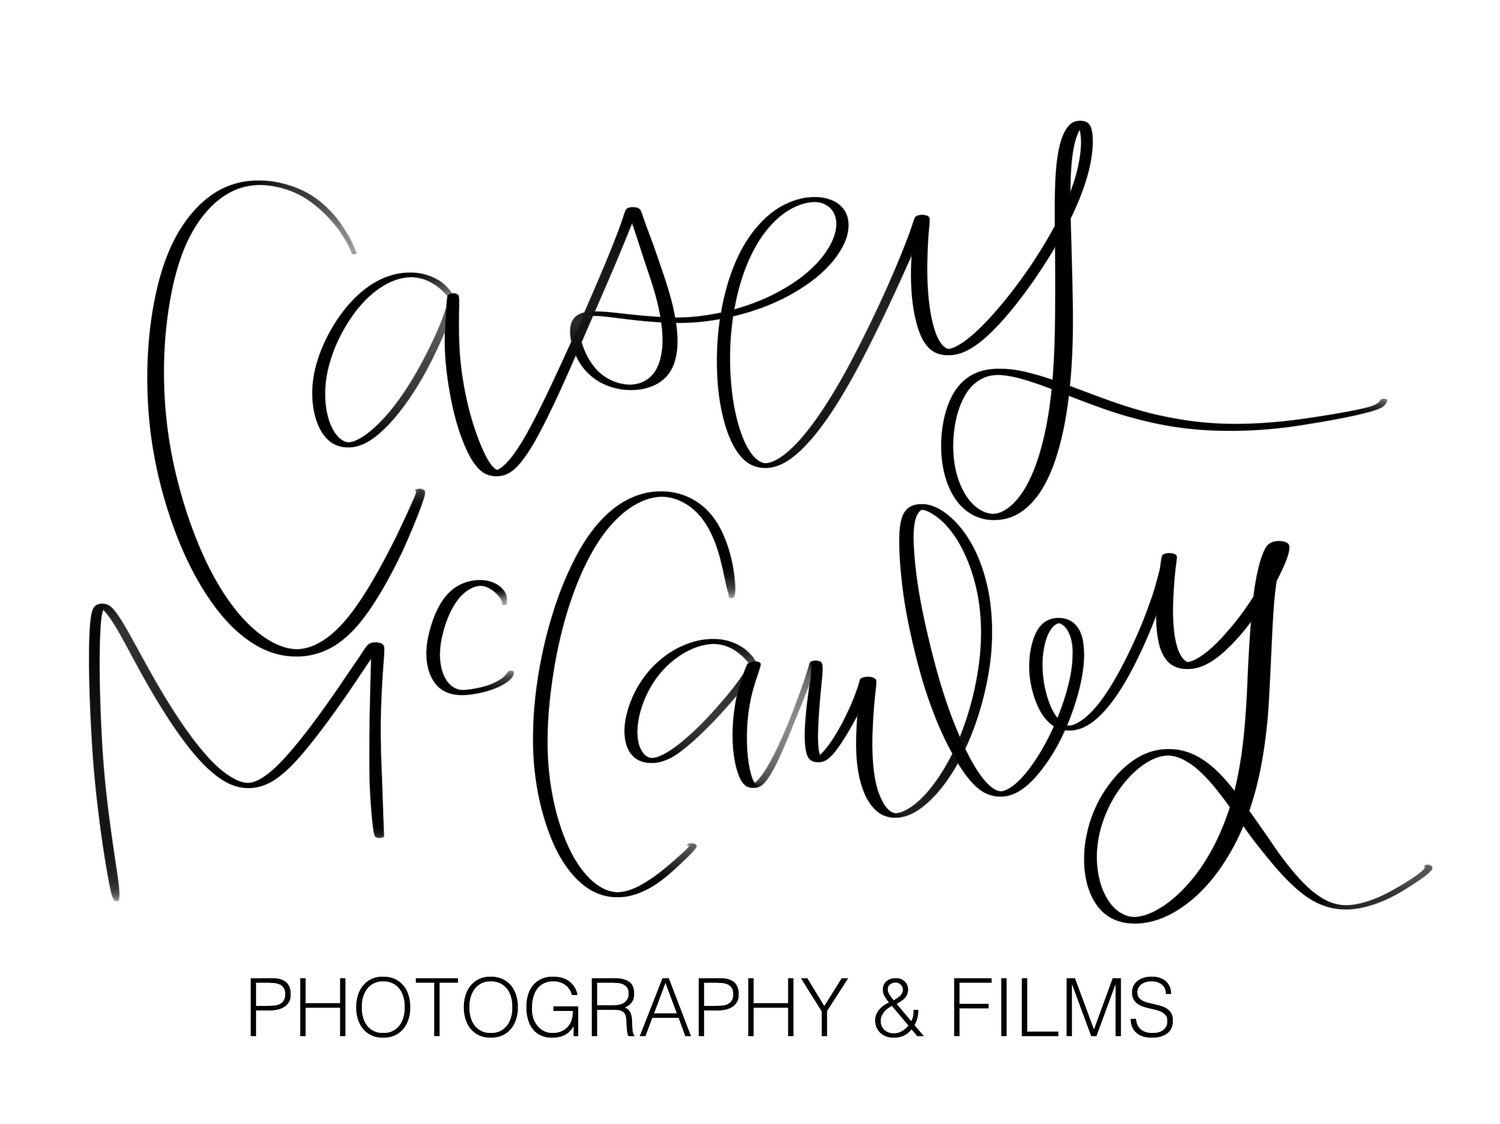 Casey McCauley Photography